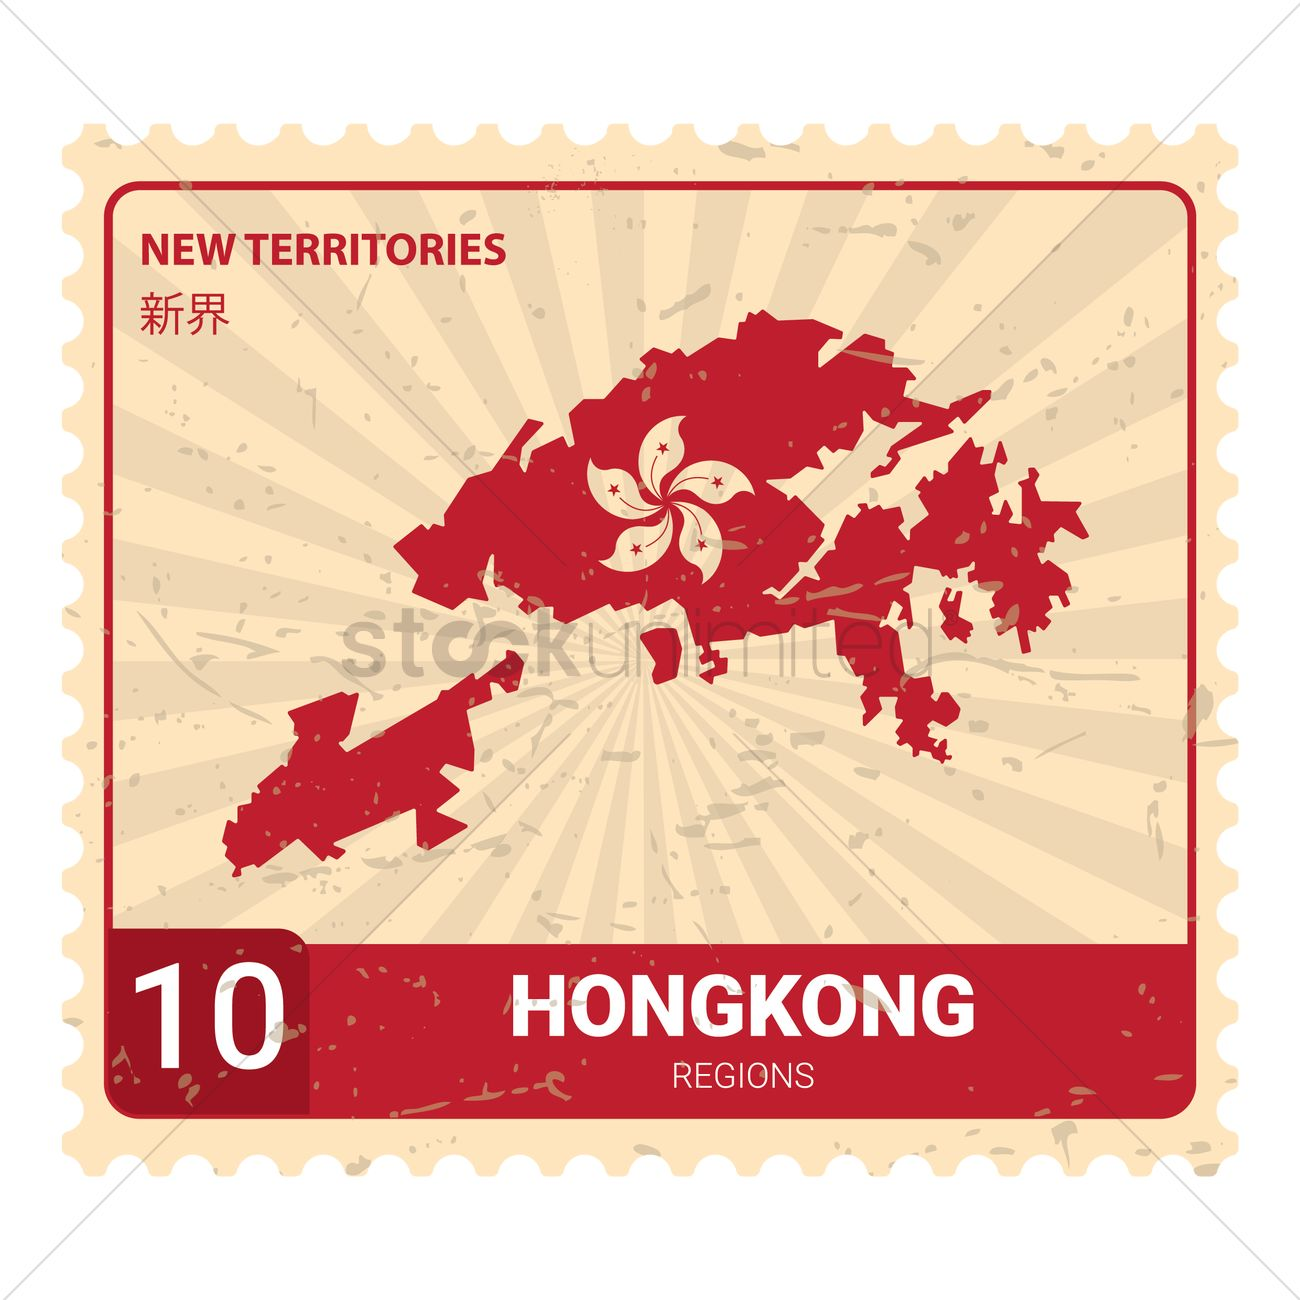 New territories map Vector Image 1593642 StockUnlimited